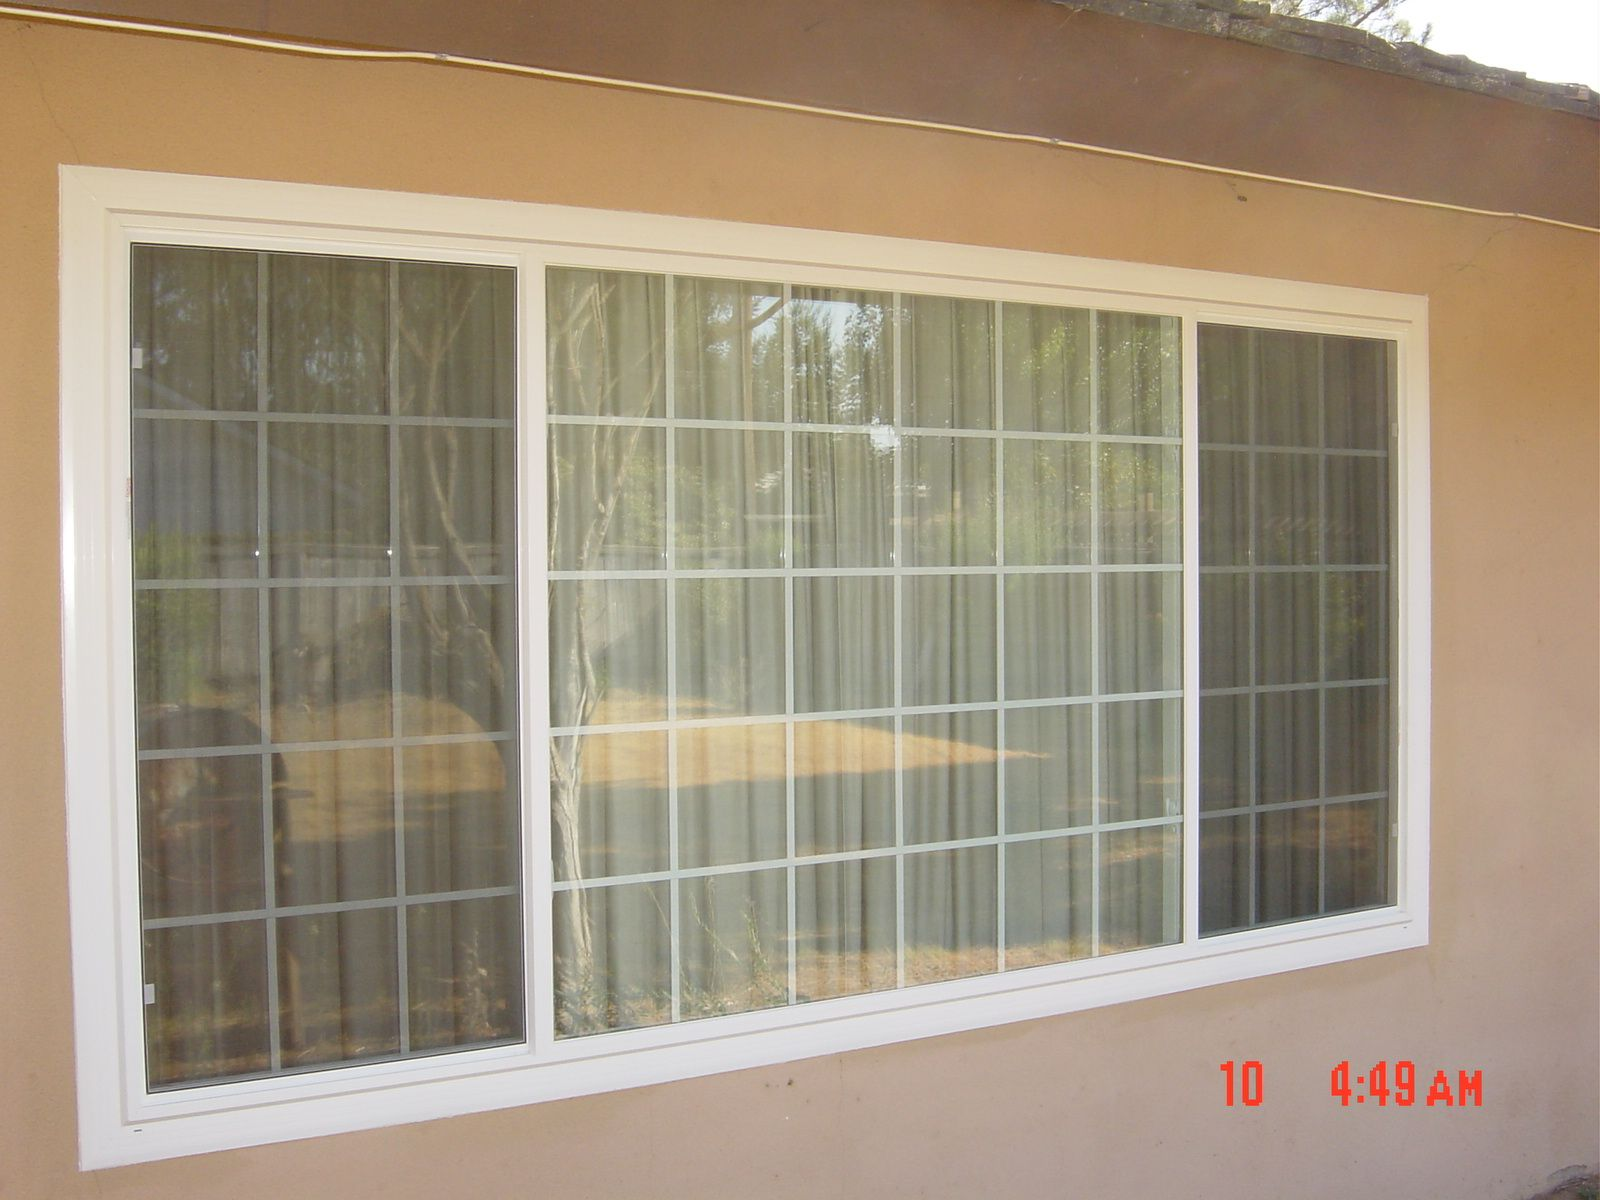 Contact Us About New Windows Doors And Siding Windows Window Styles Replace Door